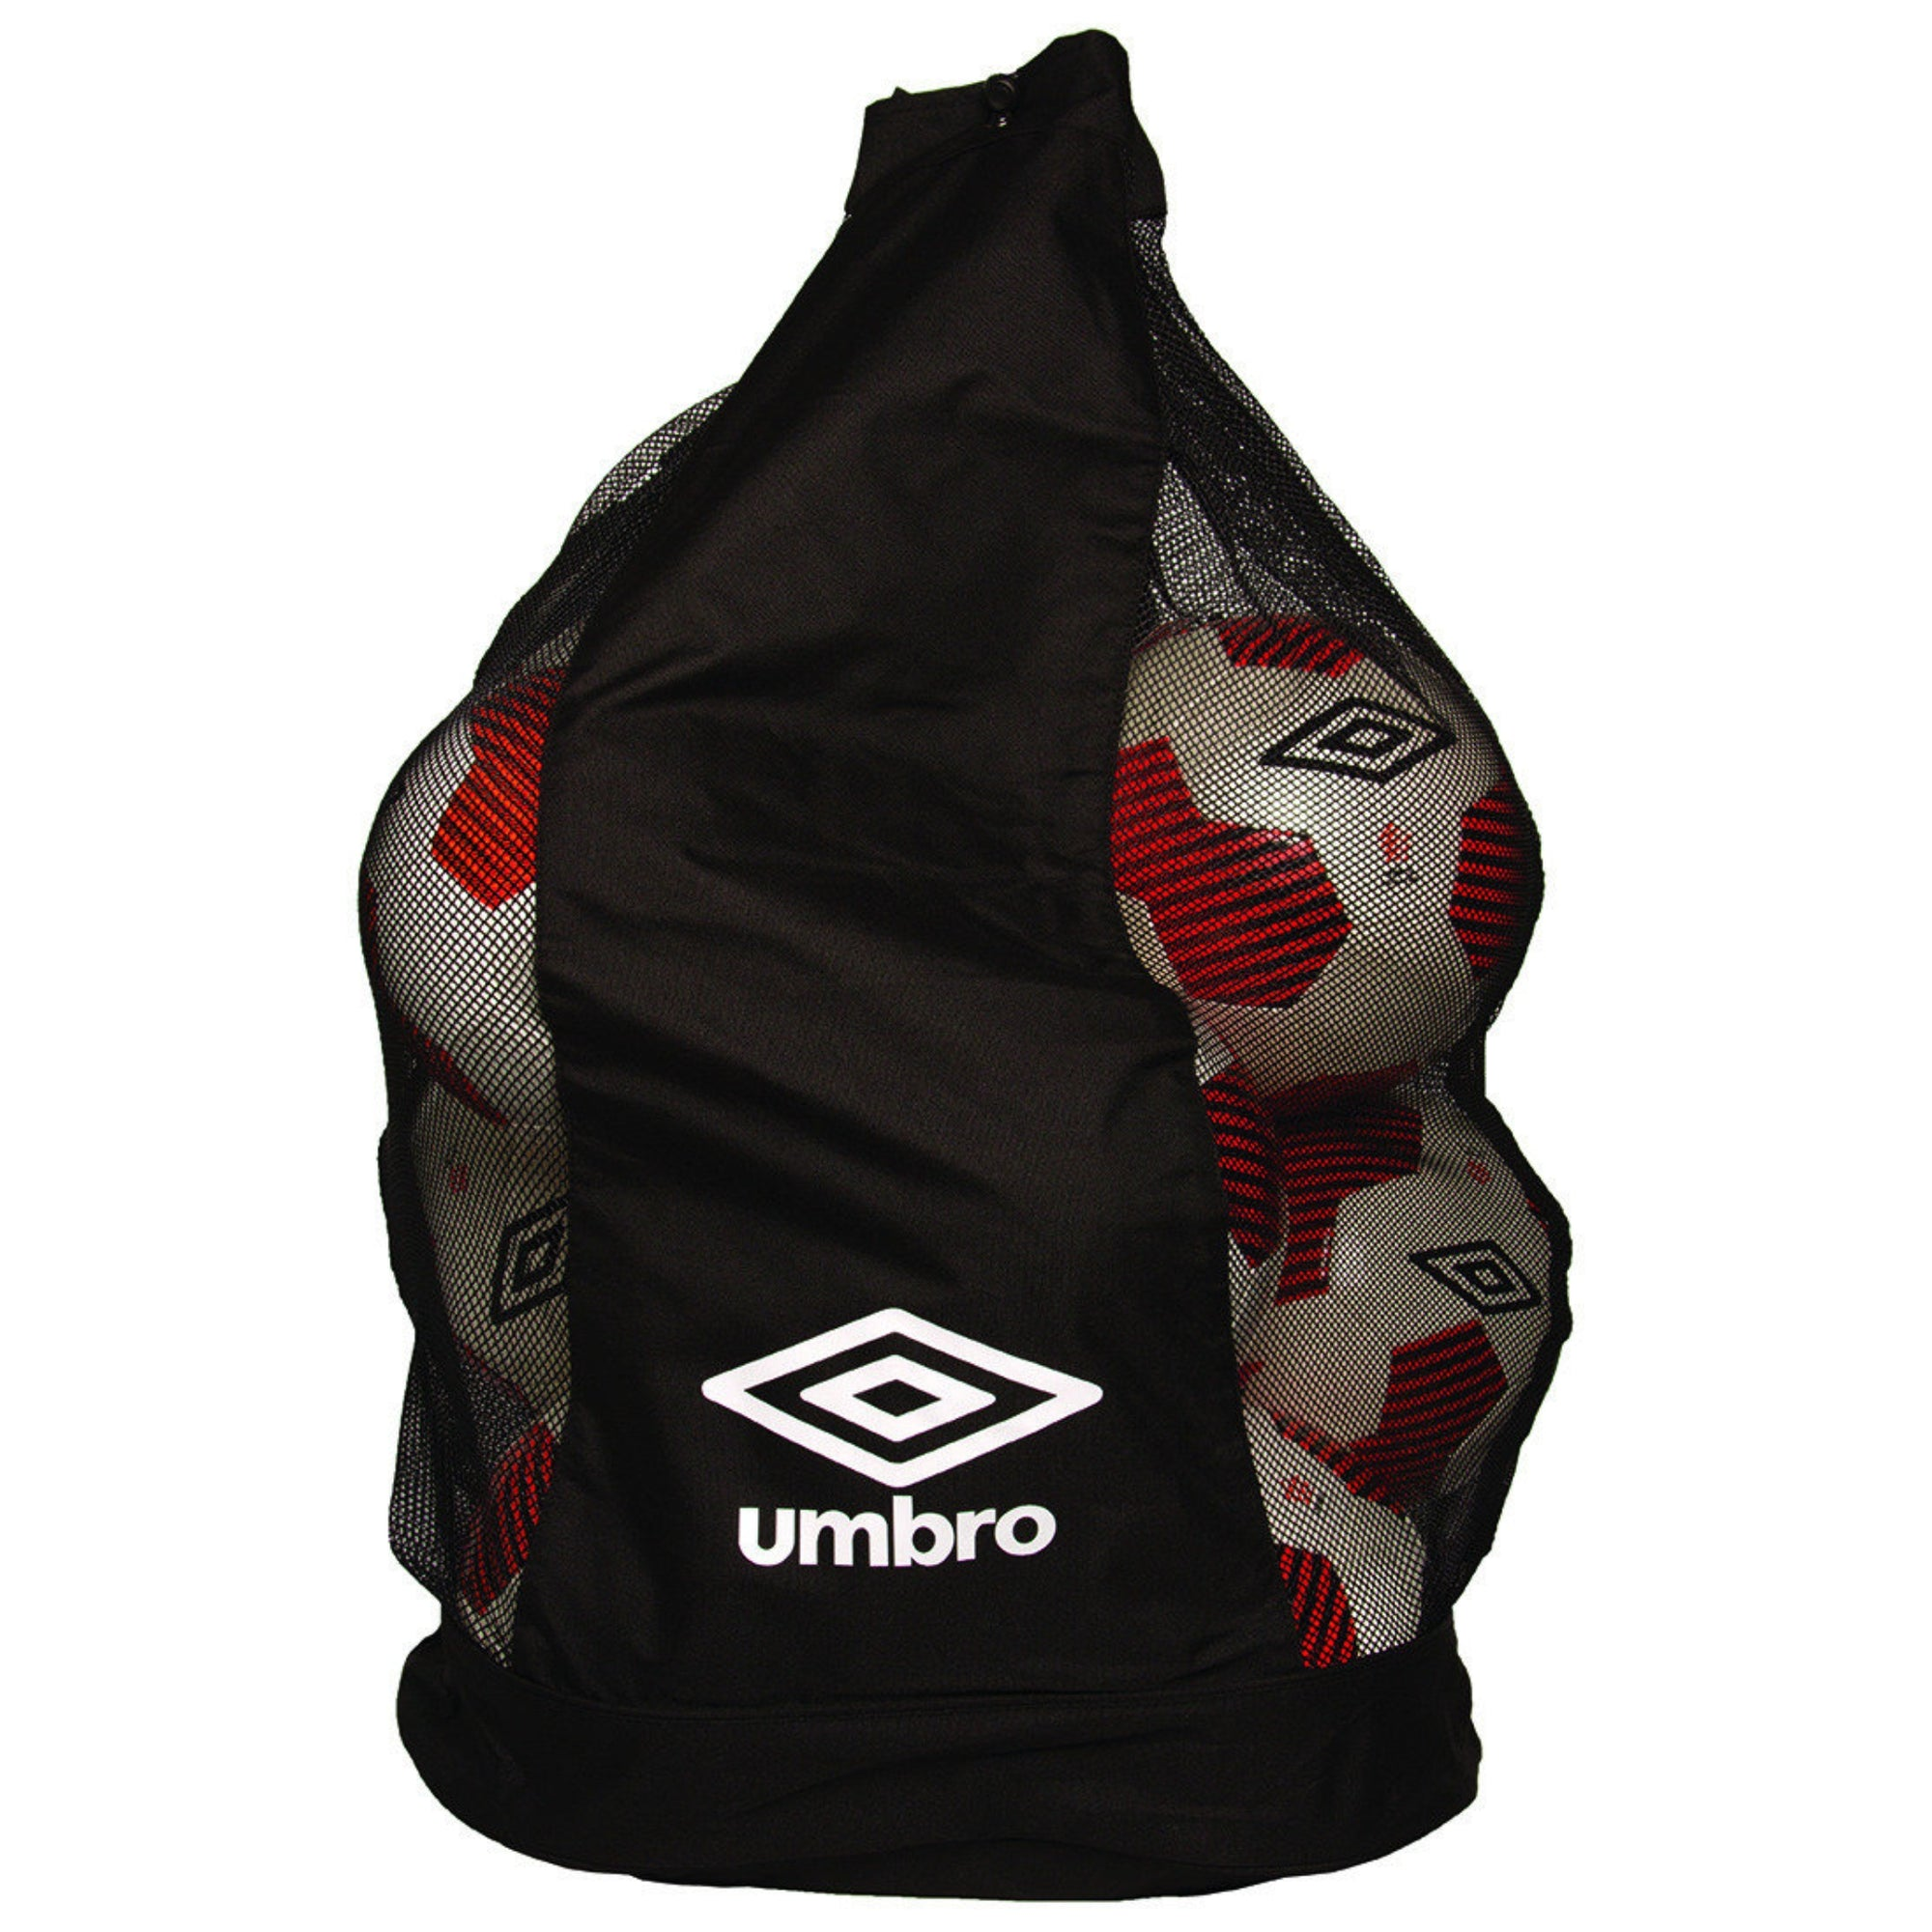 Umbro Ball Sack